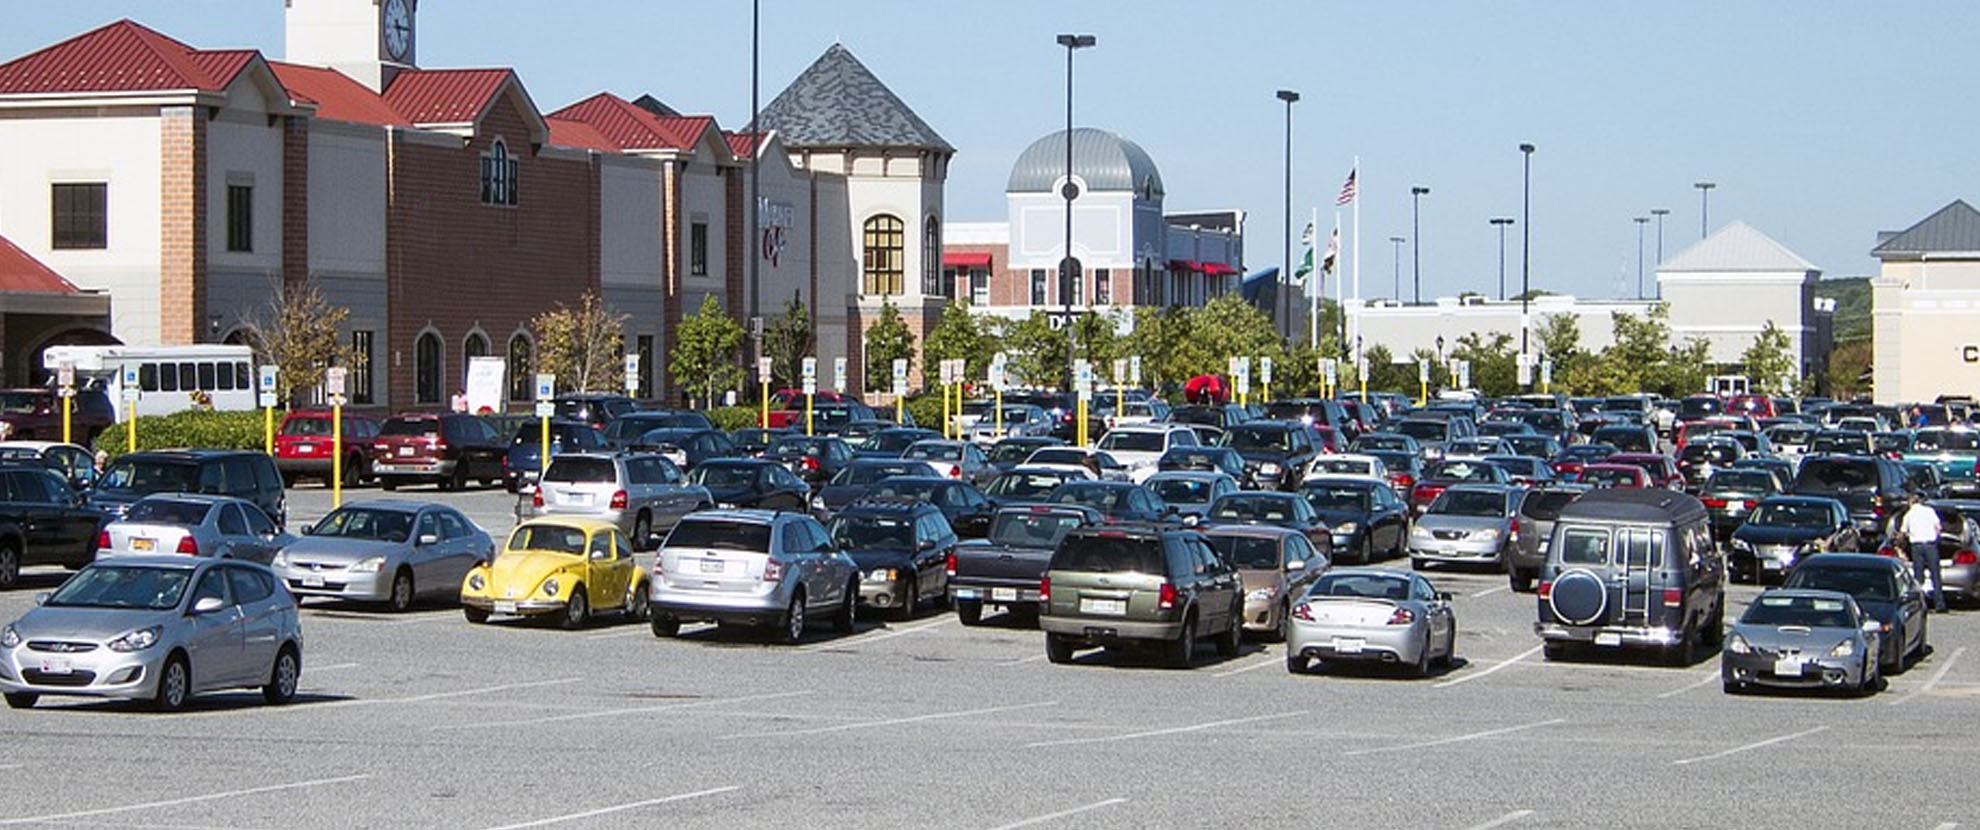 Accident in a Parking Lot?  The Three Details to Look For